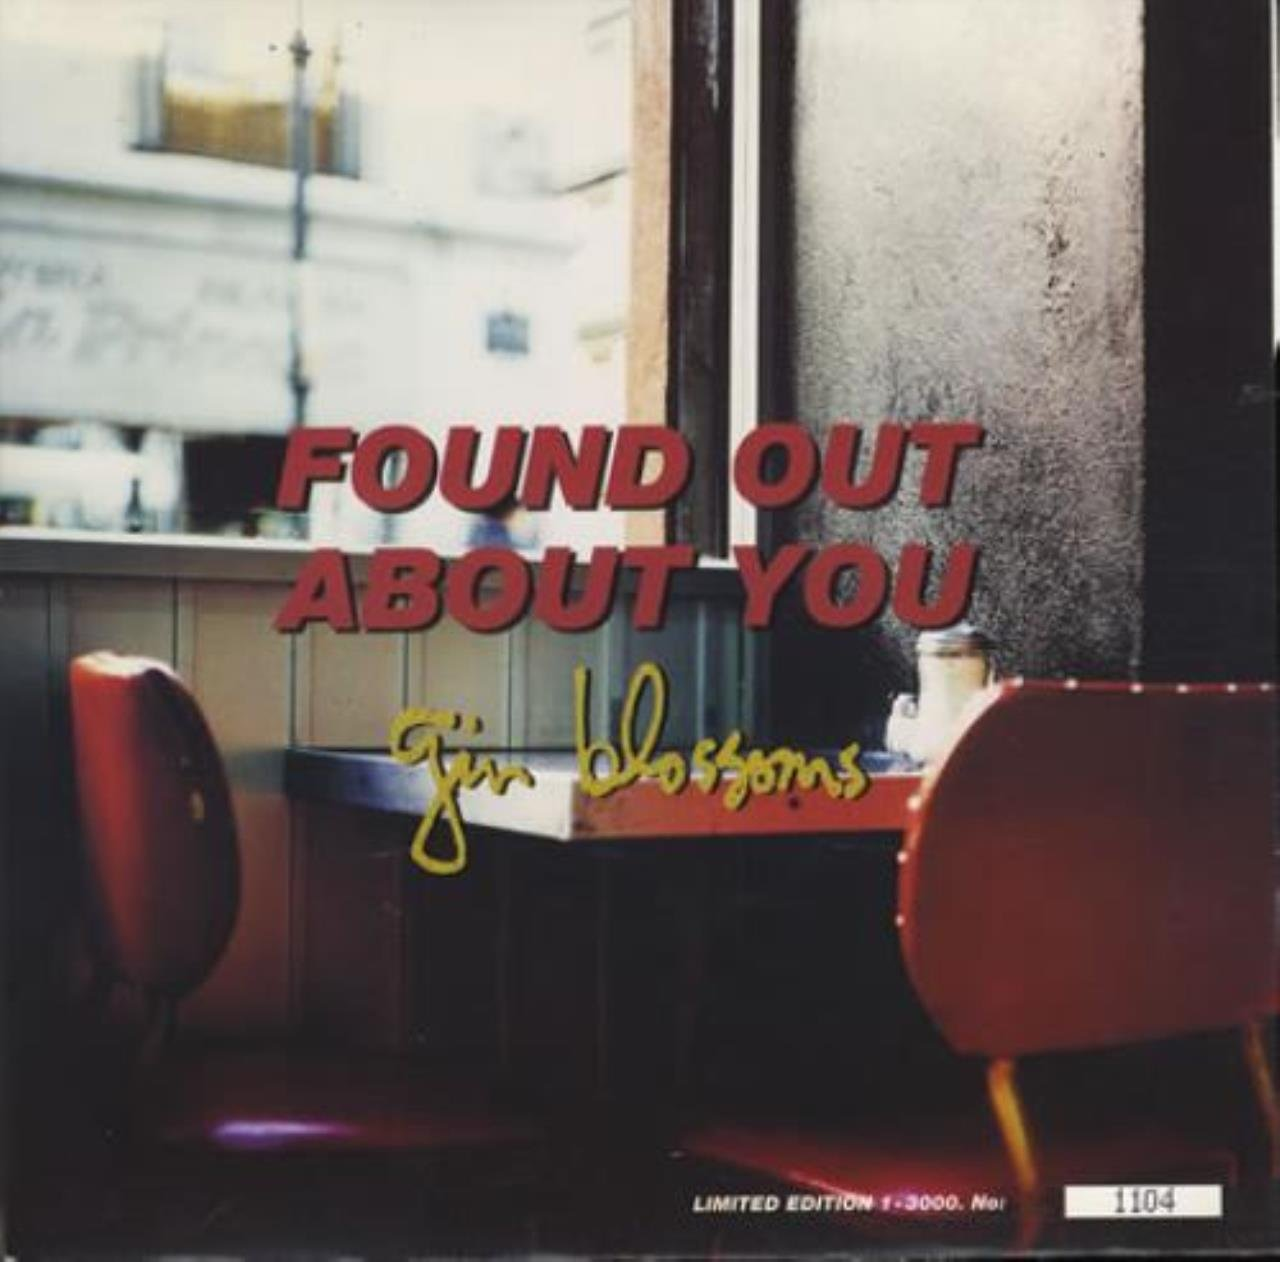 Found Phoenix Mall Out About You No. - 0020 Quantity limited